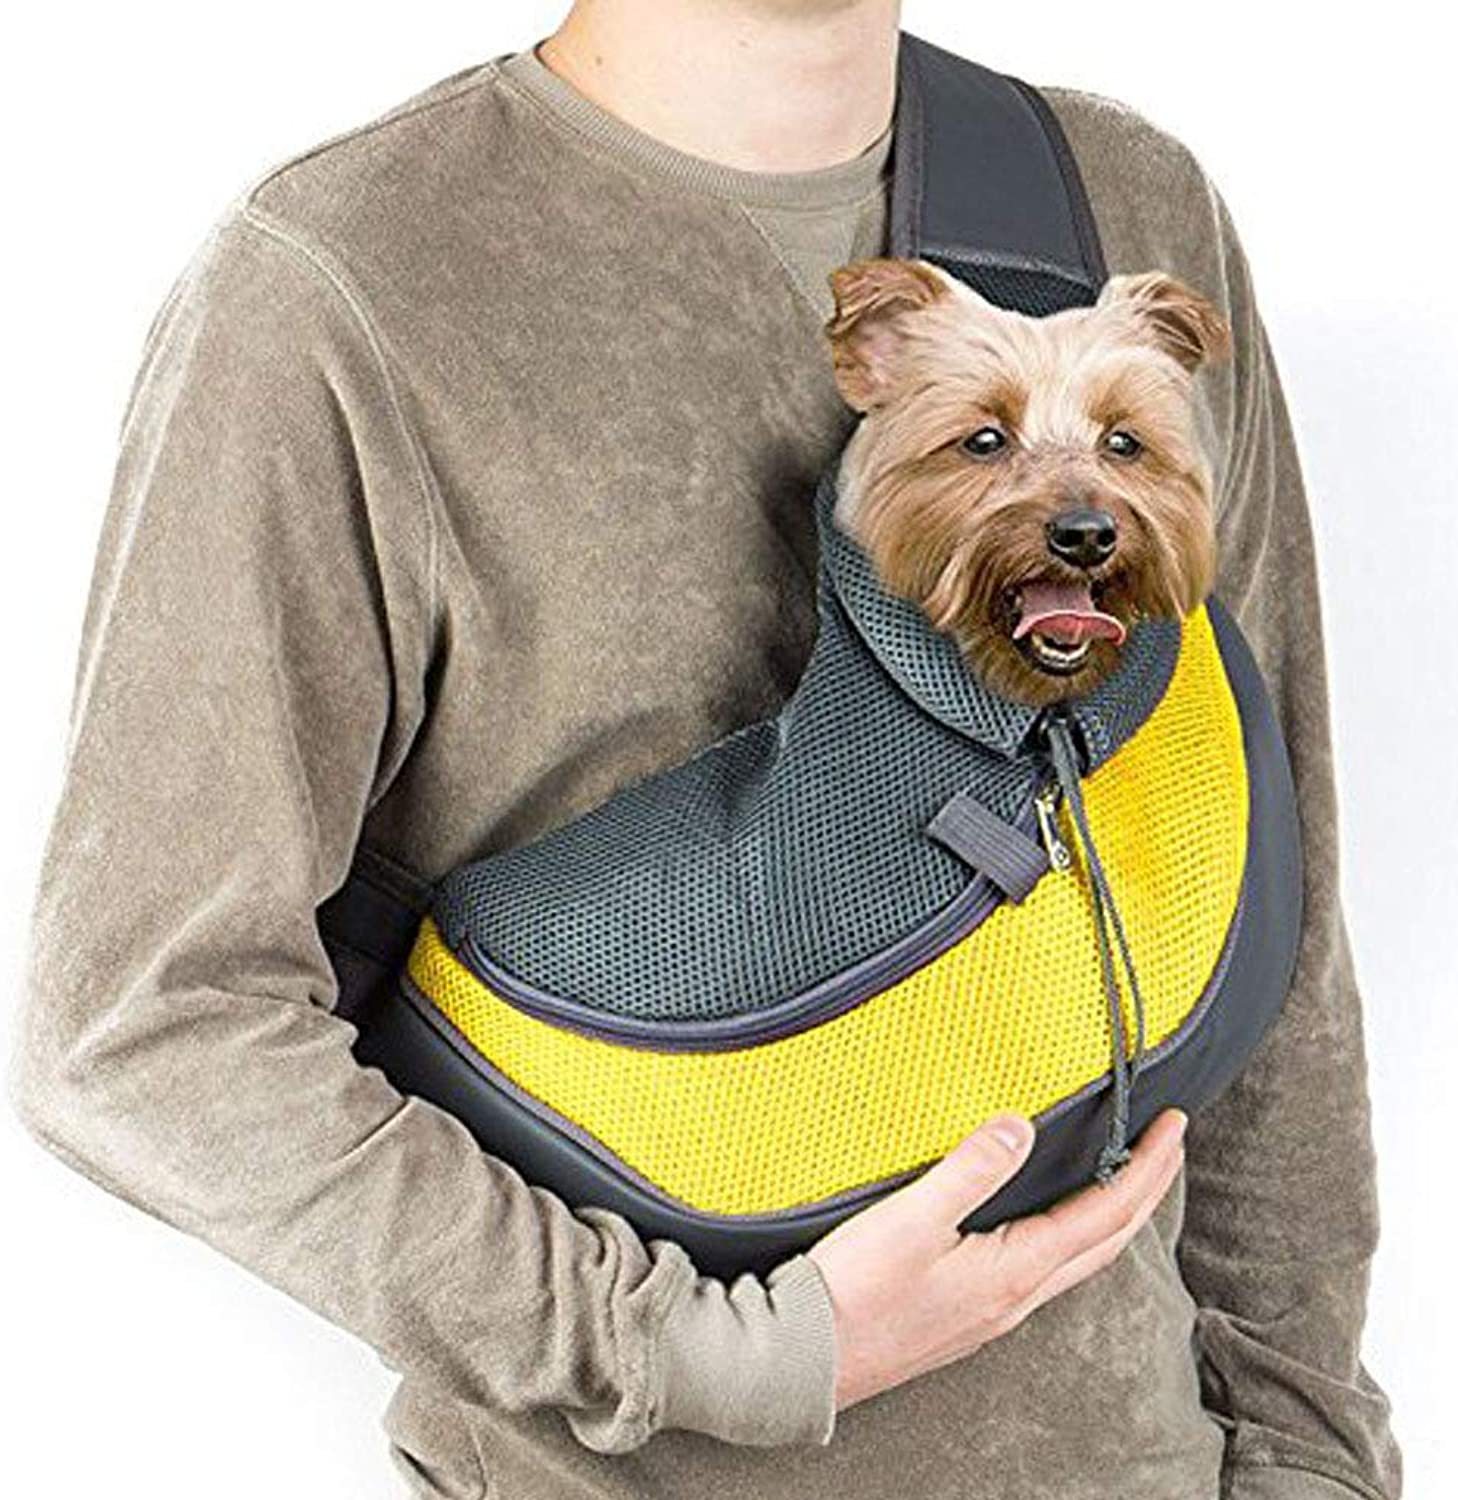 Outdoor Pet Dog Cat Carrier Sling HandsFree Shoulder Travel Bag Mesh Backpack Travel Tote Shoulder Bag with Inner Leash,Yellow,S